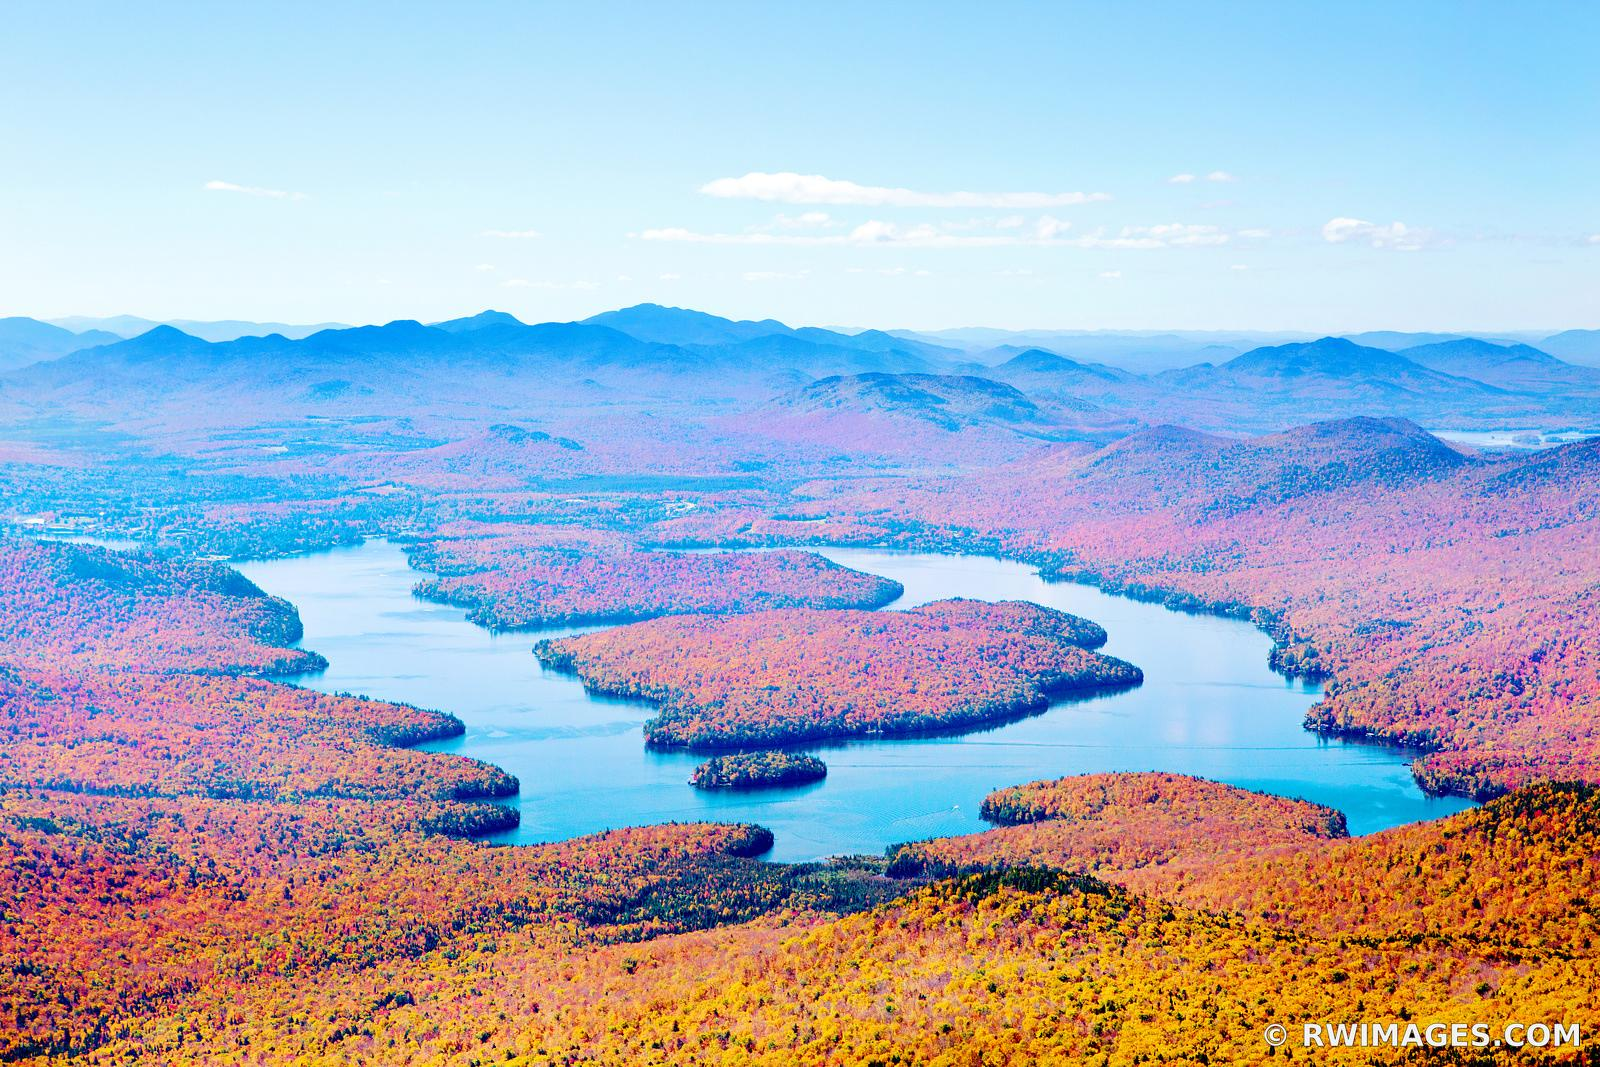 LAKE PLACID VIEW FROM WHITEFACE MOUNTAIN ADIRONDACK MOUNTAINS UPSTATE NEW YORK FALL AUTUMN COLORS